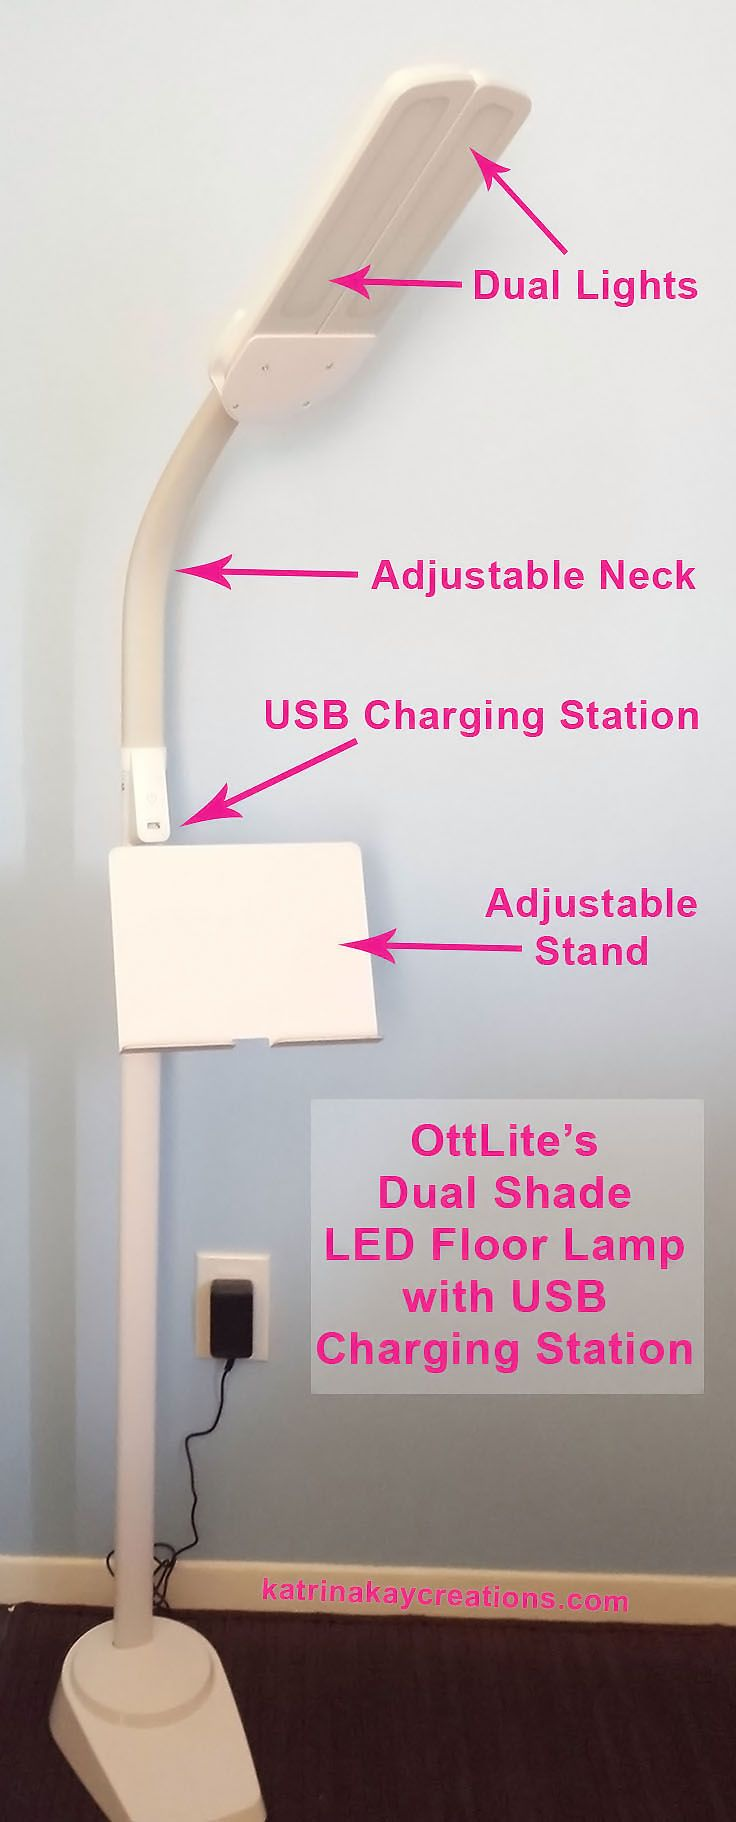 Today I M Reviewing The Ottlite Dual Shade Led Floor Lamp With Usb Charging